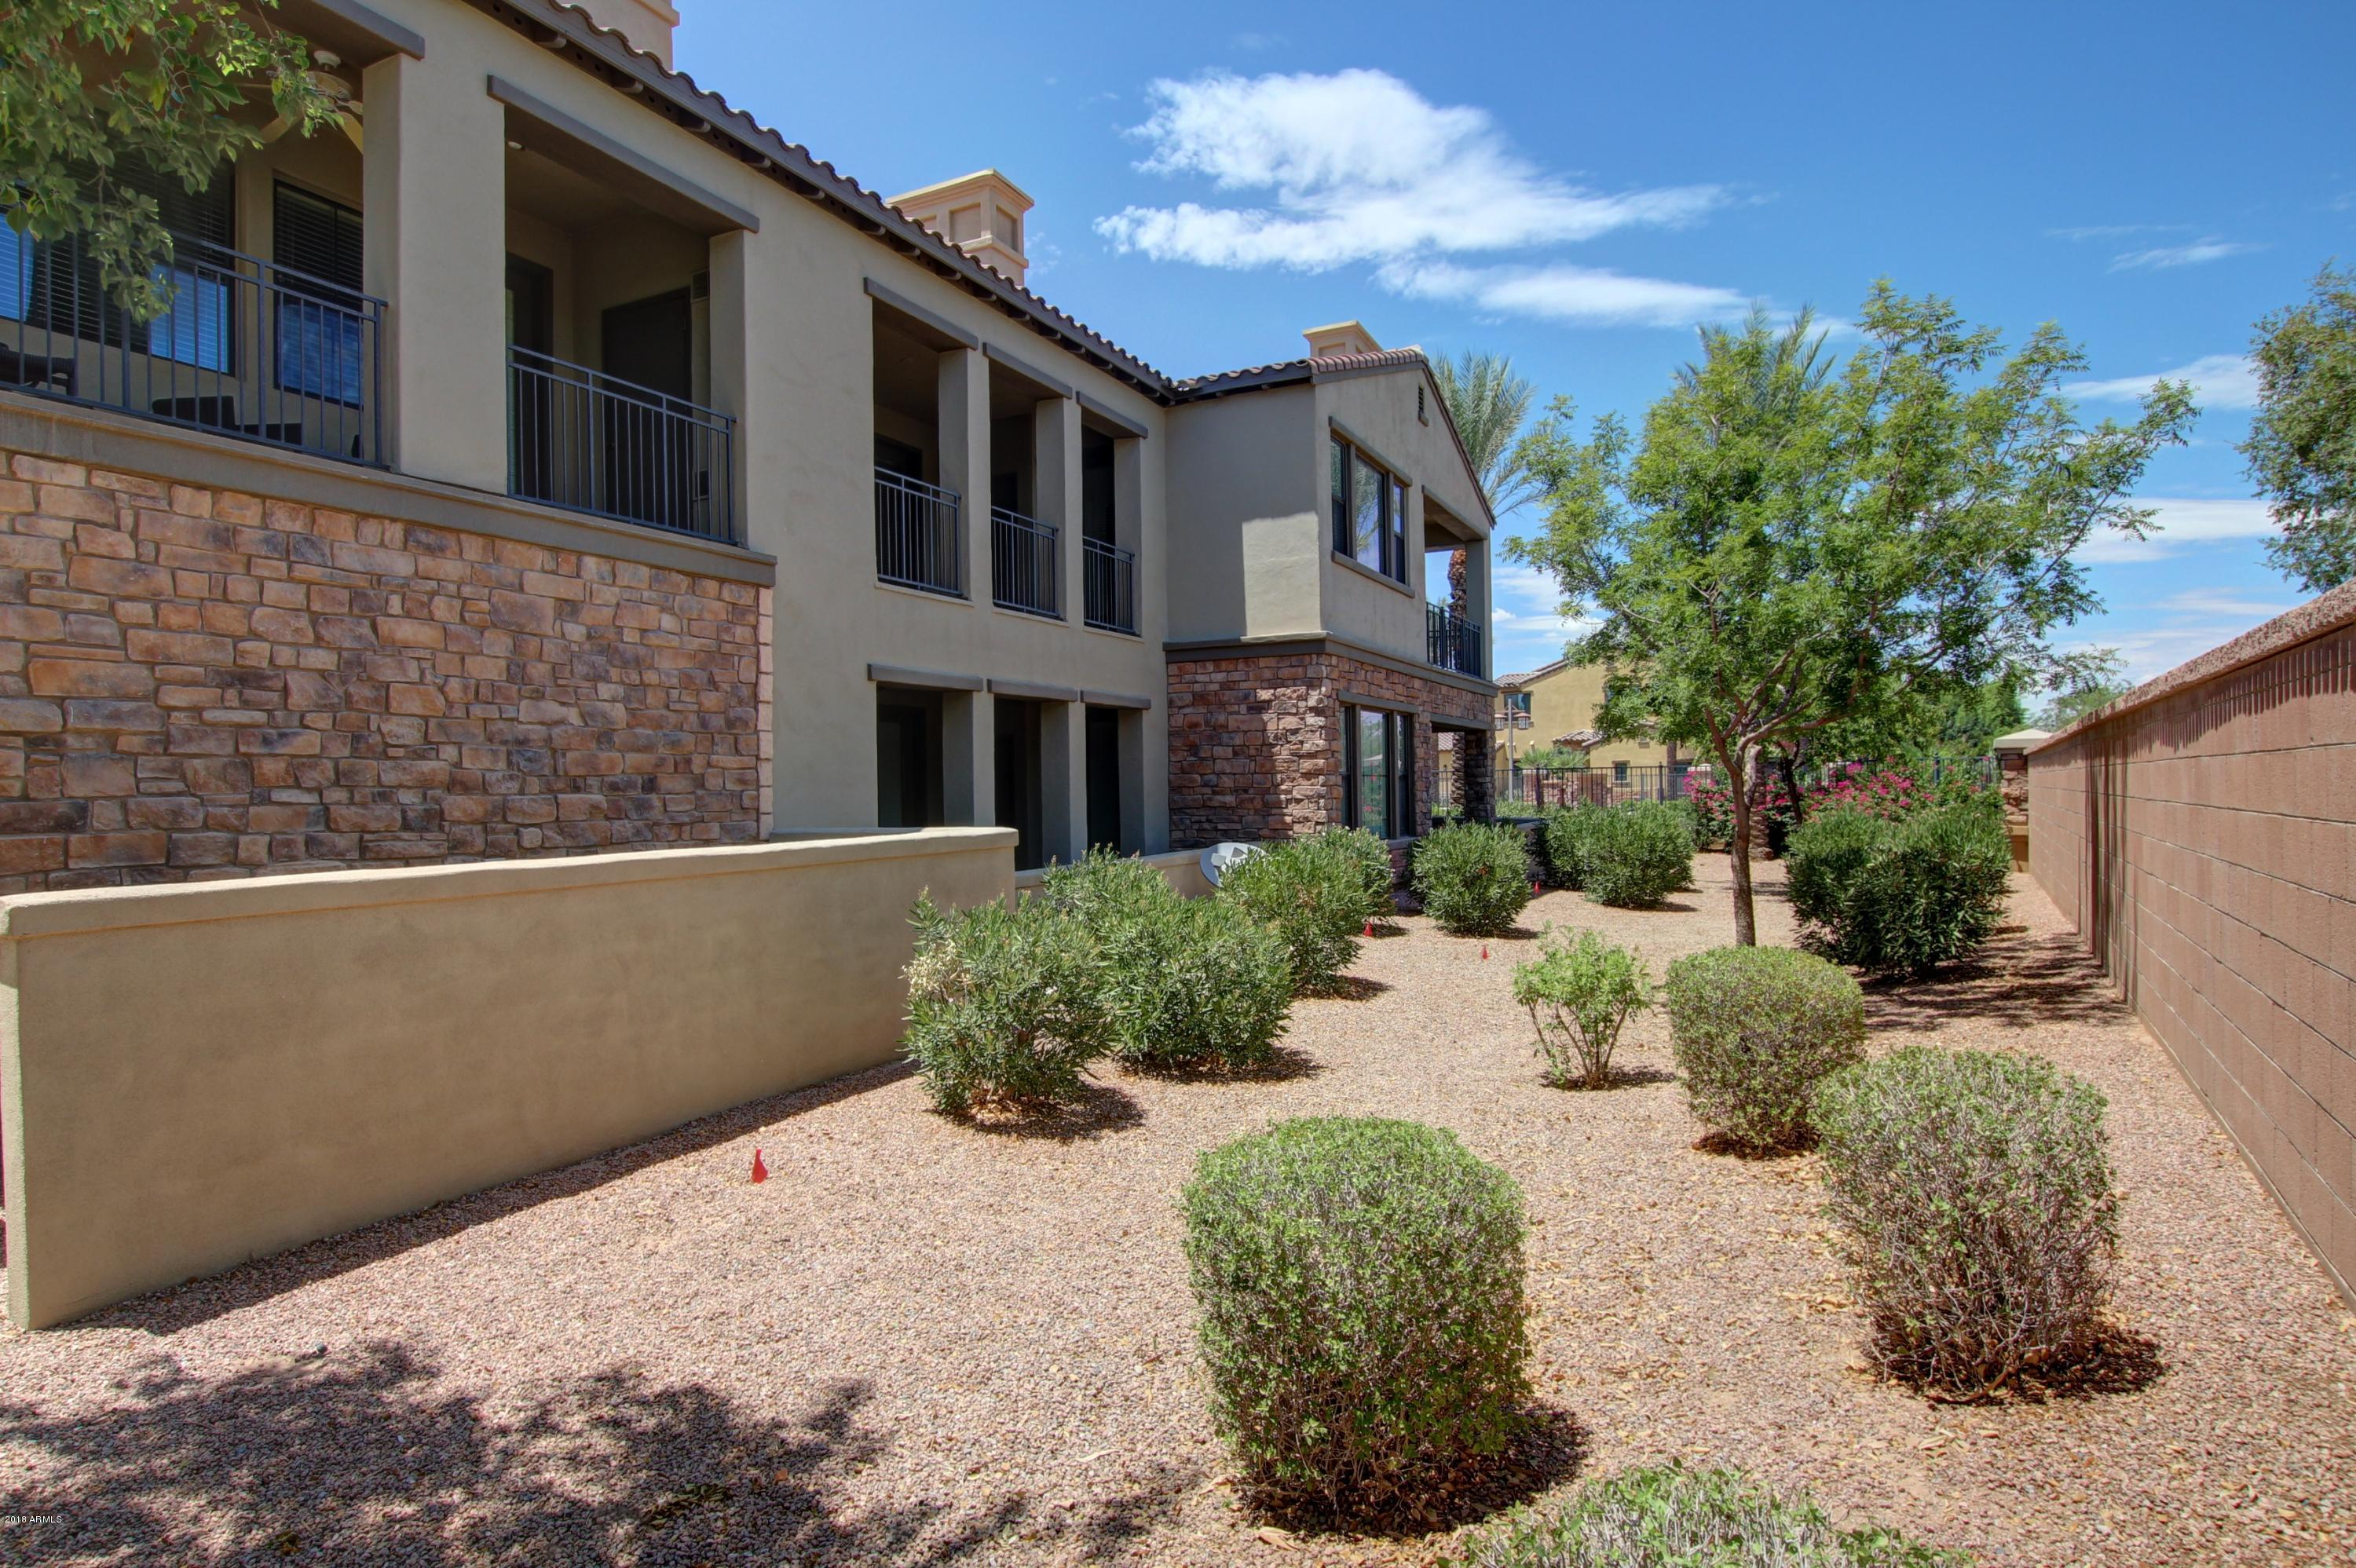 MLS 5795808 4777 S Fulton Ranch Boulevard Unit 2038, Chandler, AZ 85248 Chandler AZ Fulton Ranch